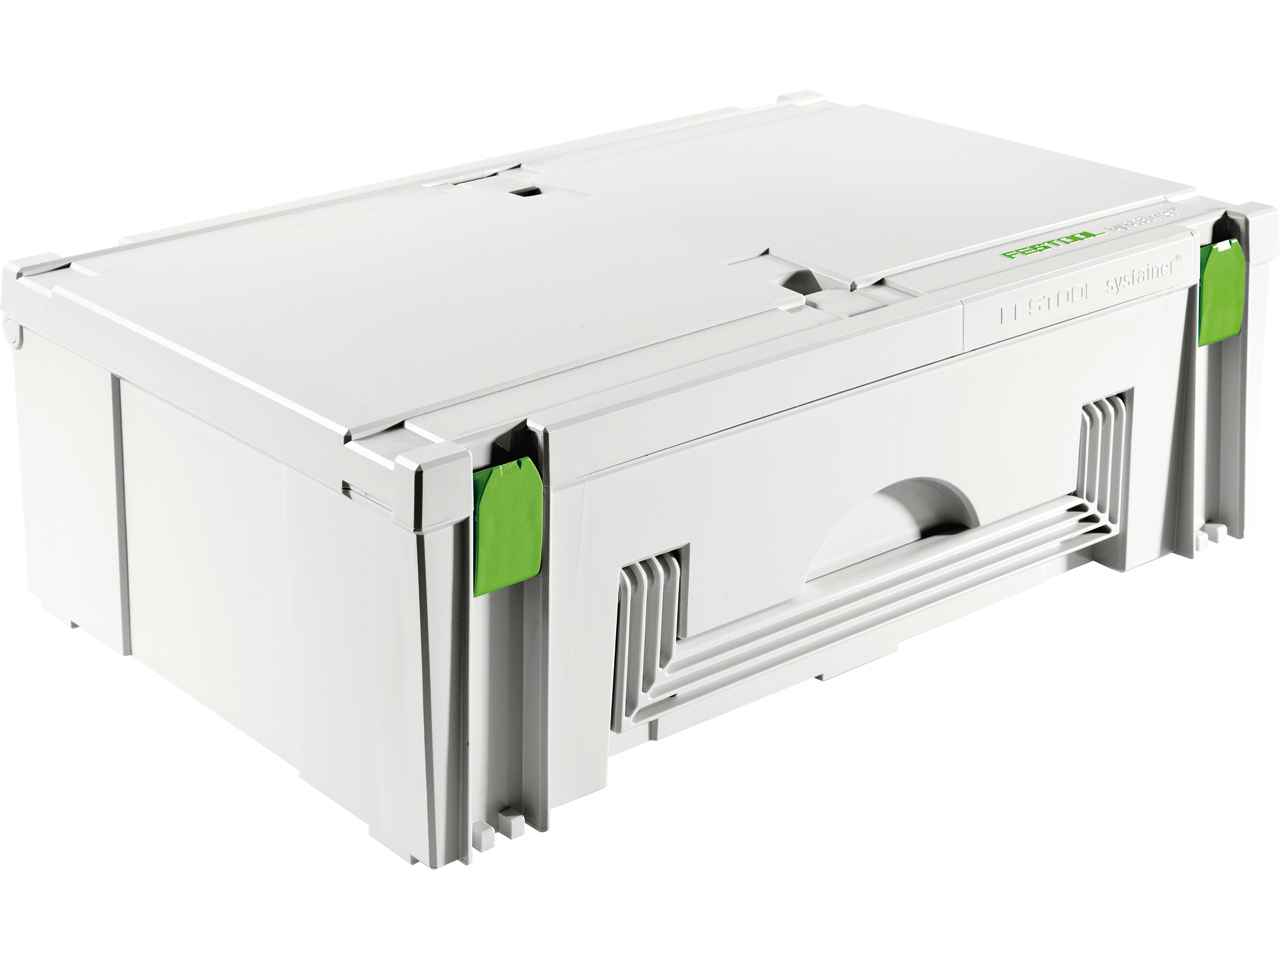 Festool 490701 SYS MAXI Systainer 590mm x 390mm x 210mm